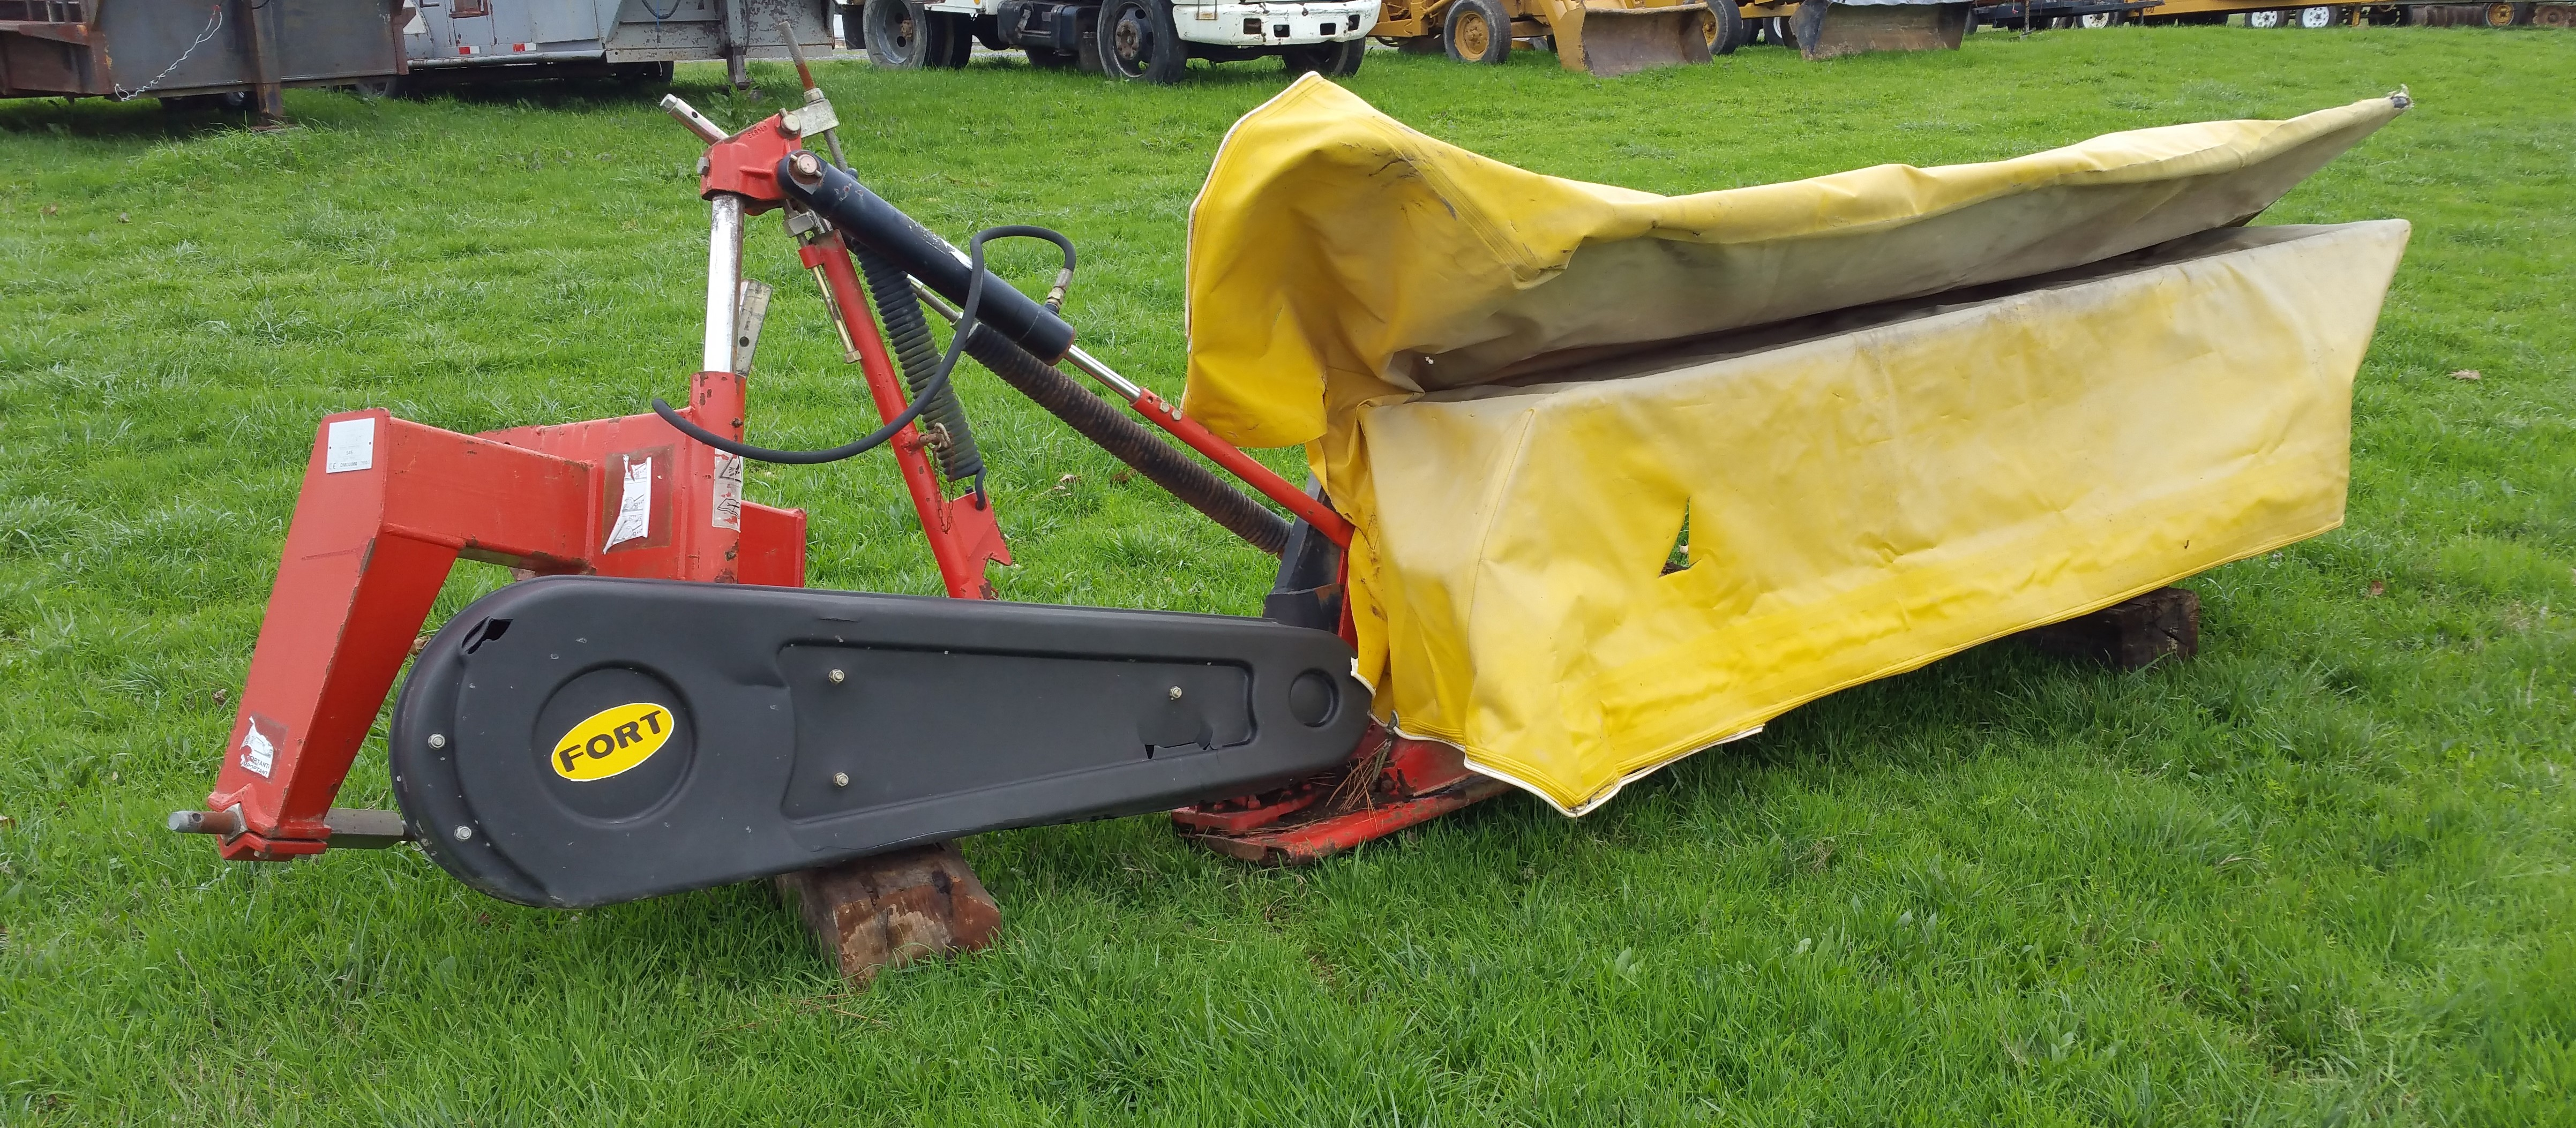 Fort DMD 2060 Hay Disc Mower